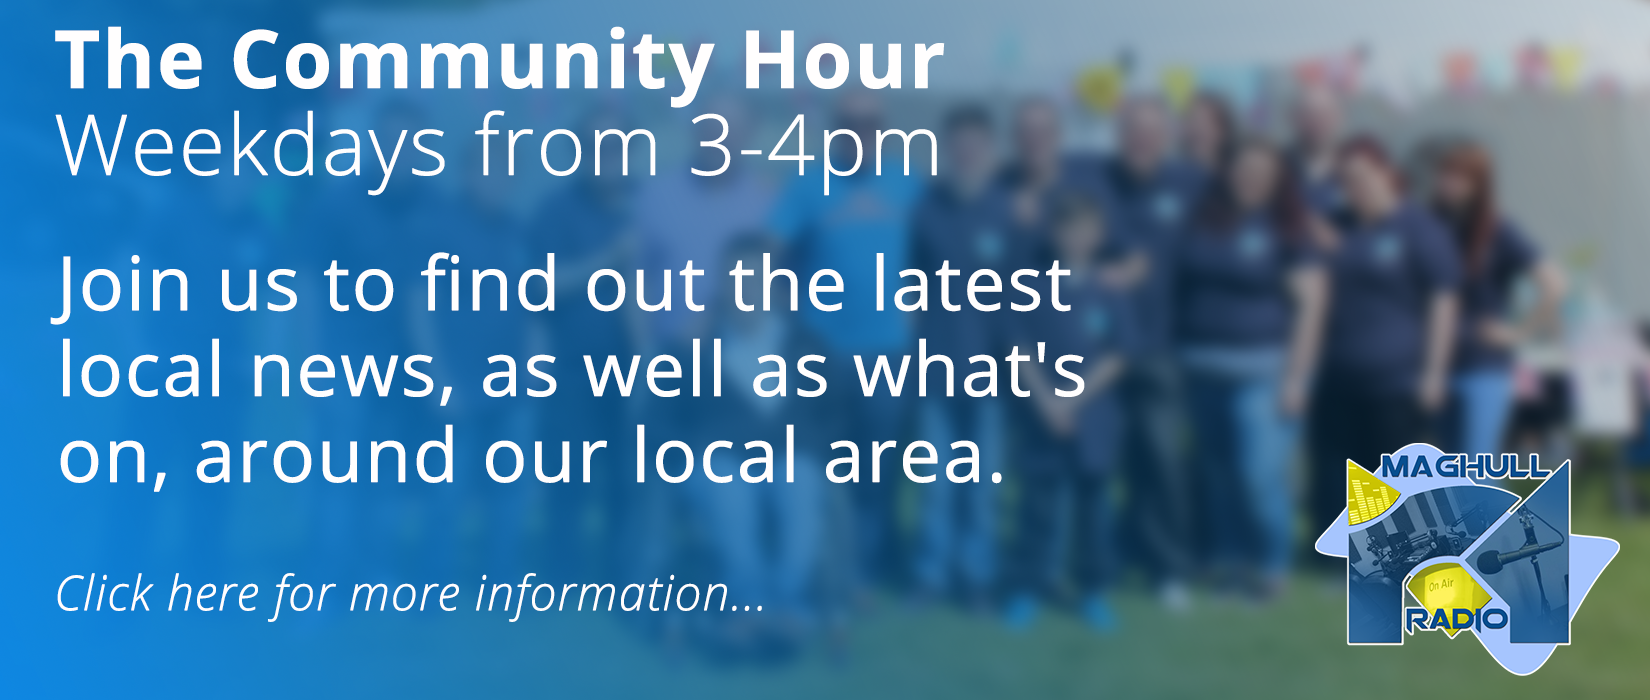 Click here to find out more informaiton about the Community Hour, or to get your event/activity mentioned